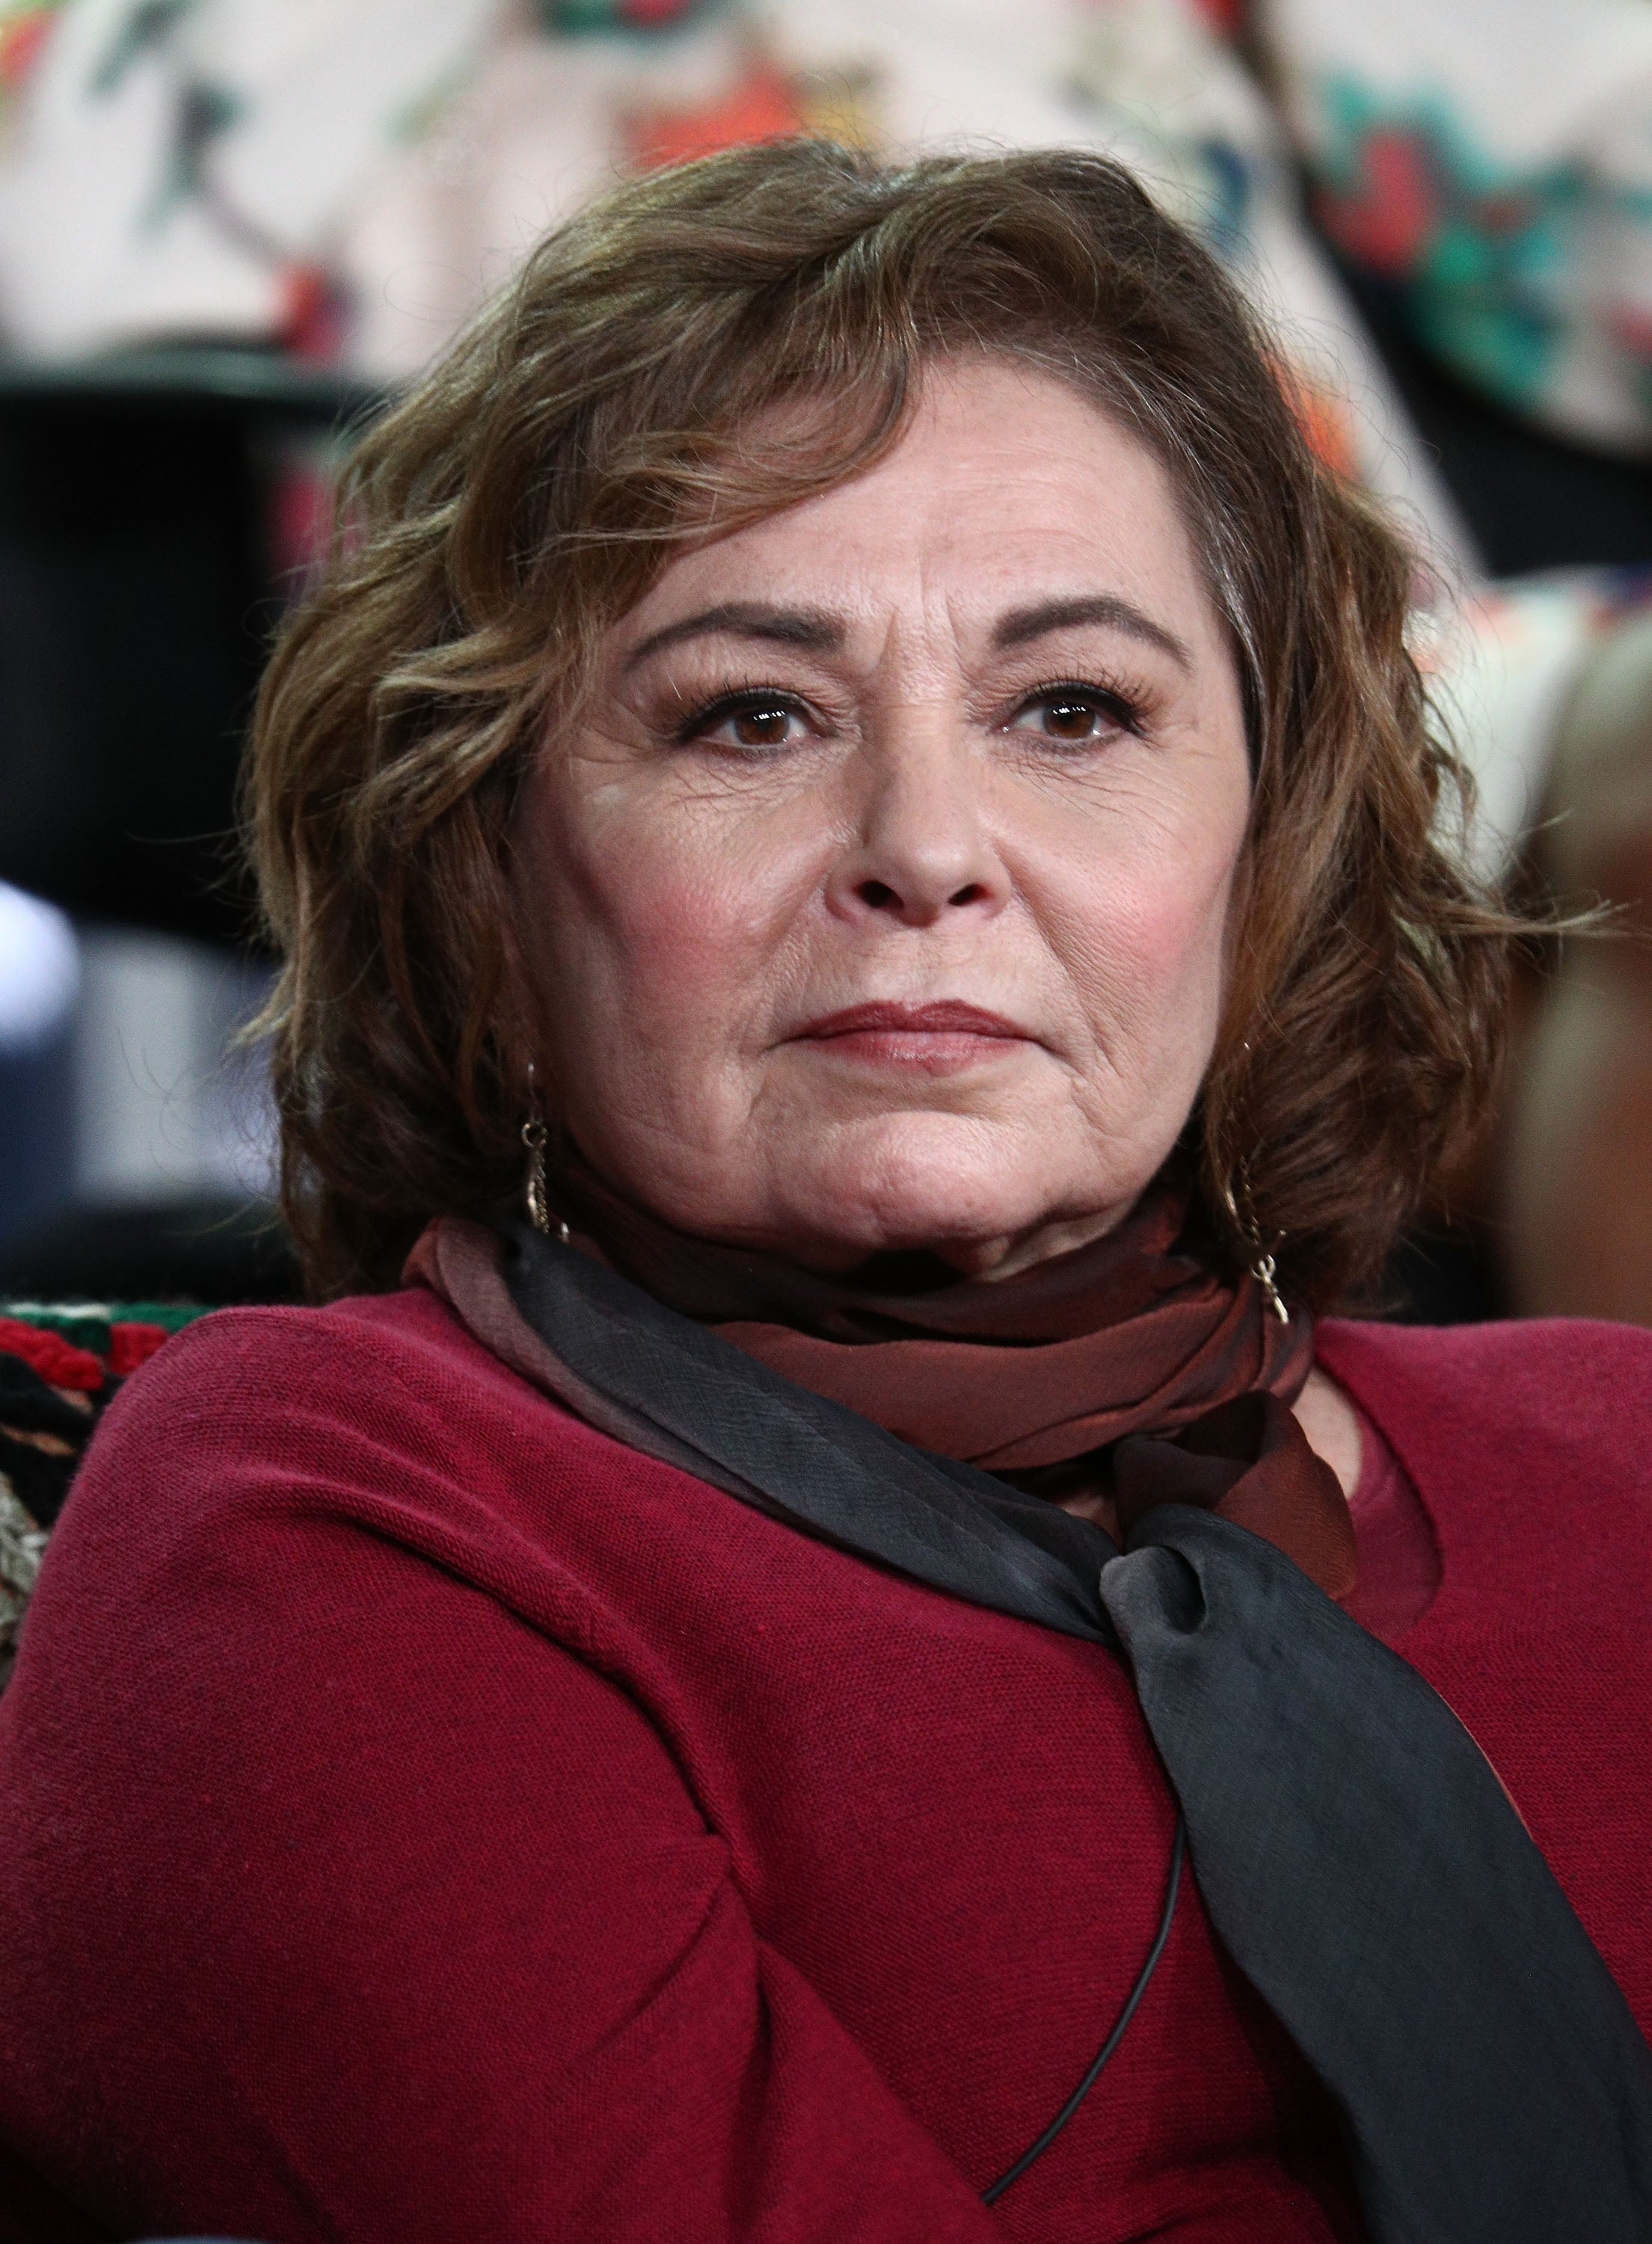 Roseanne Barr Roseanne Barr new photo